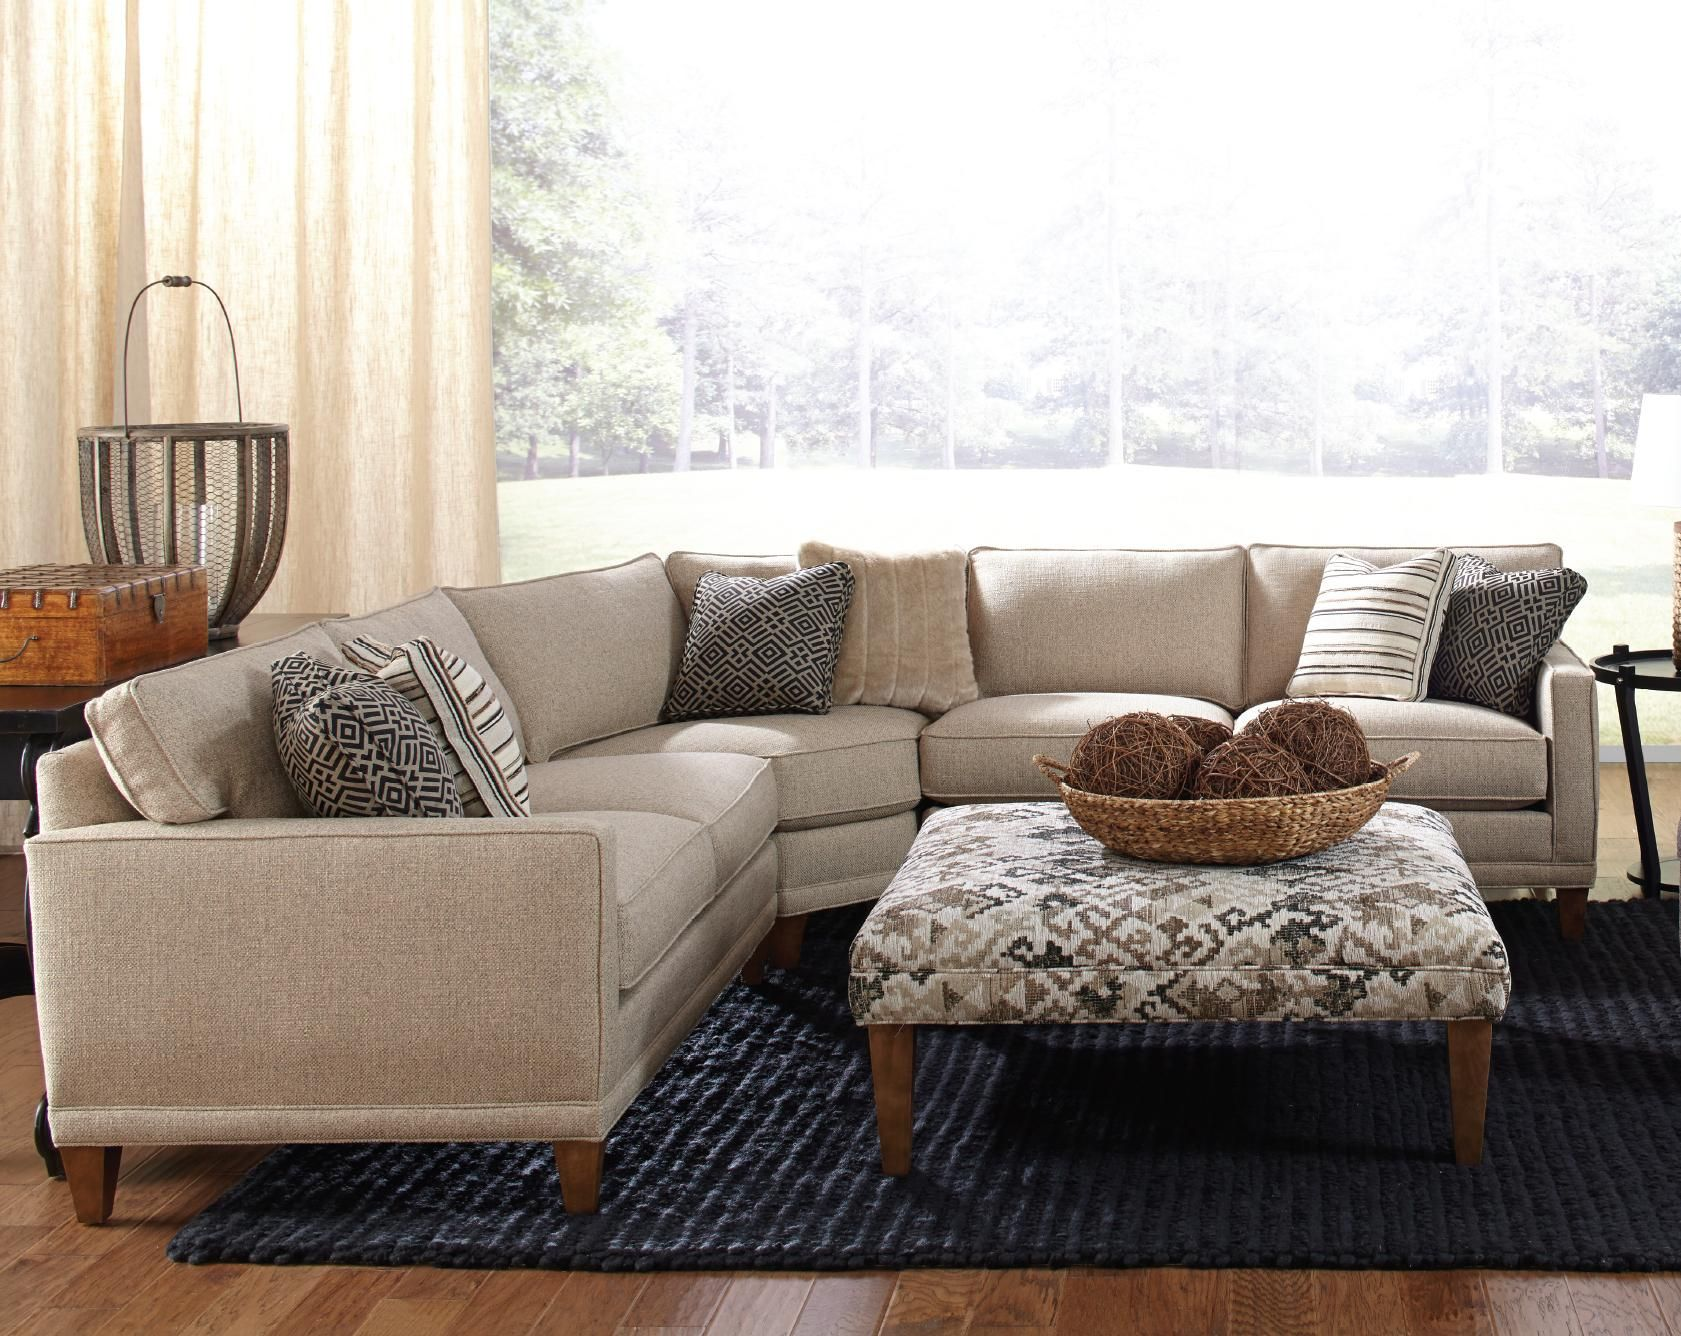 22 best SOFAS SECTIONALS Most fortable images on Pinterest